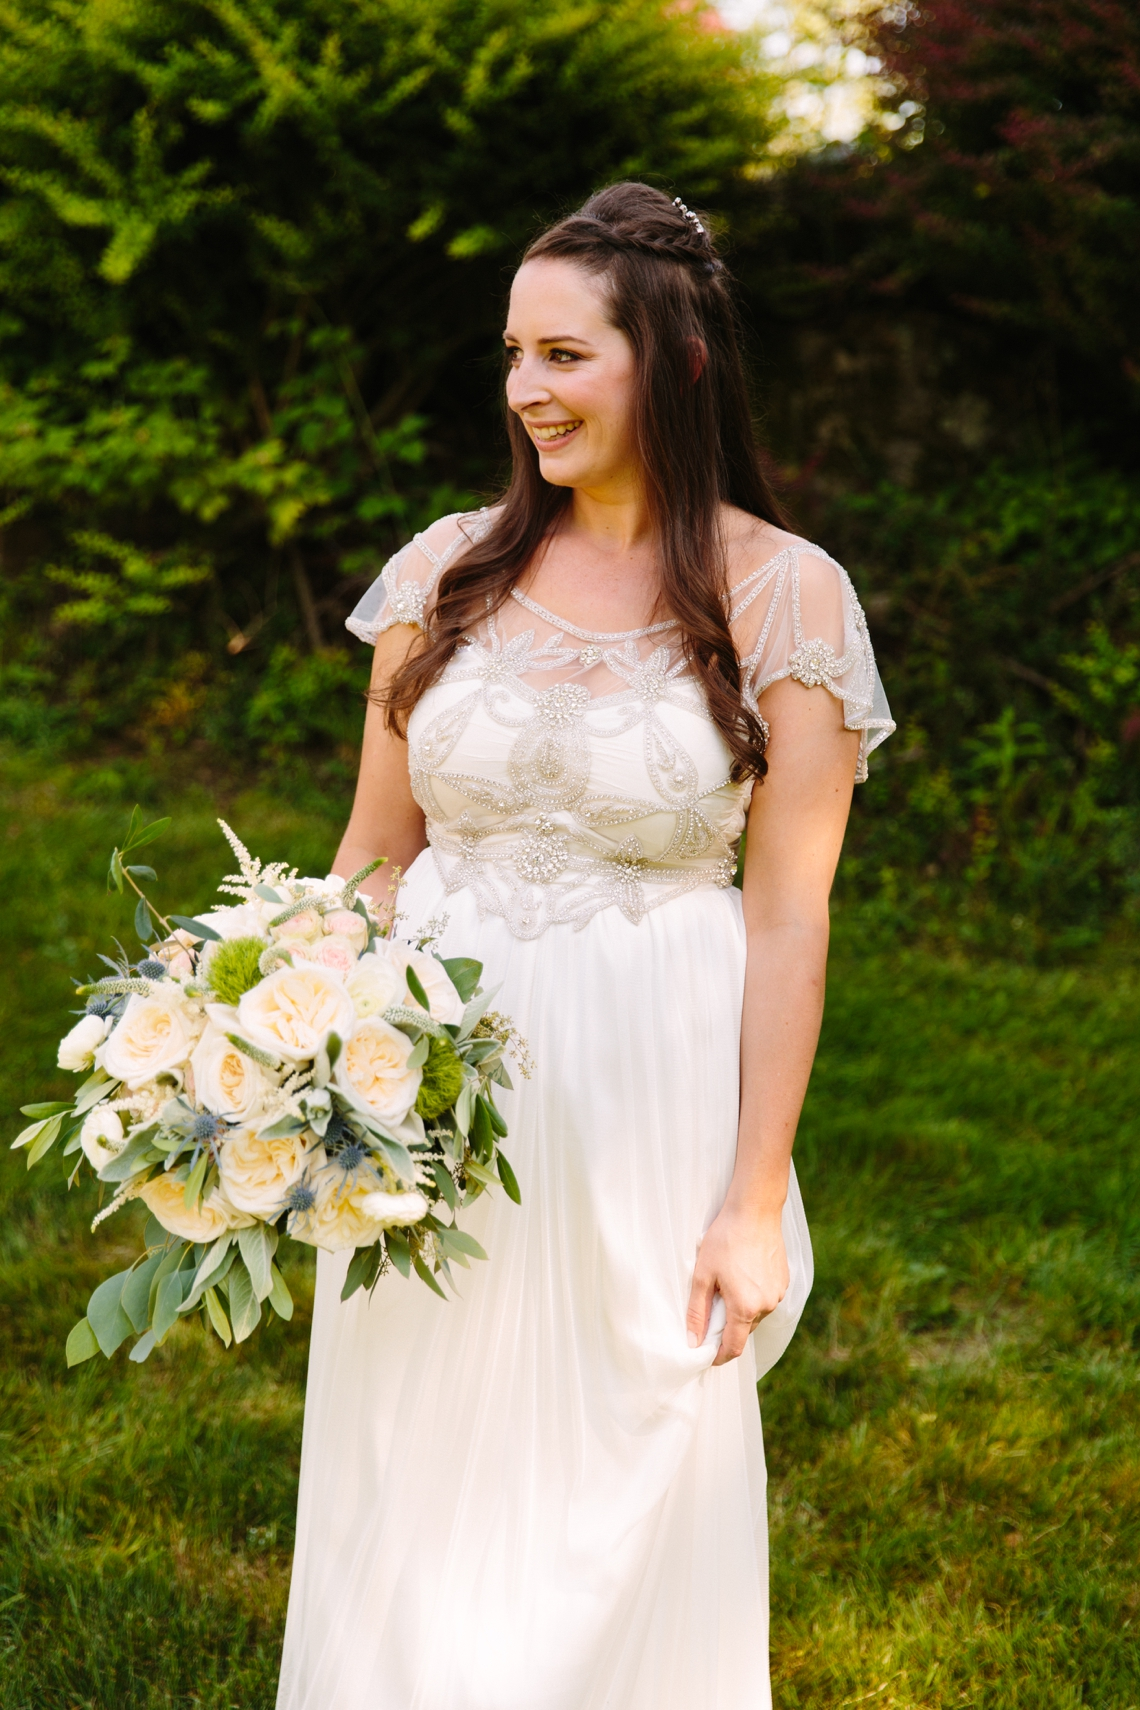 Allegra_Anderson_Photography_Inn_at_Mystic_Wedding_Connecticut_140